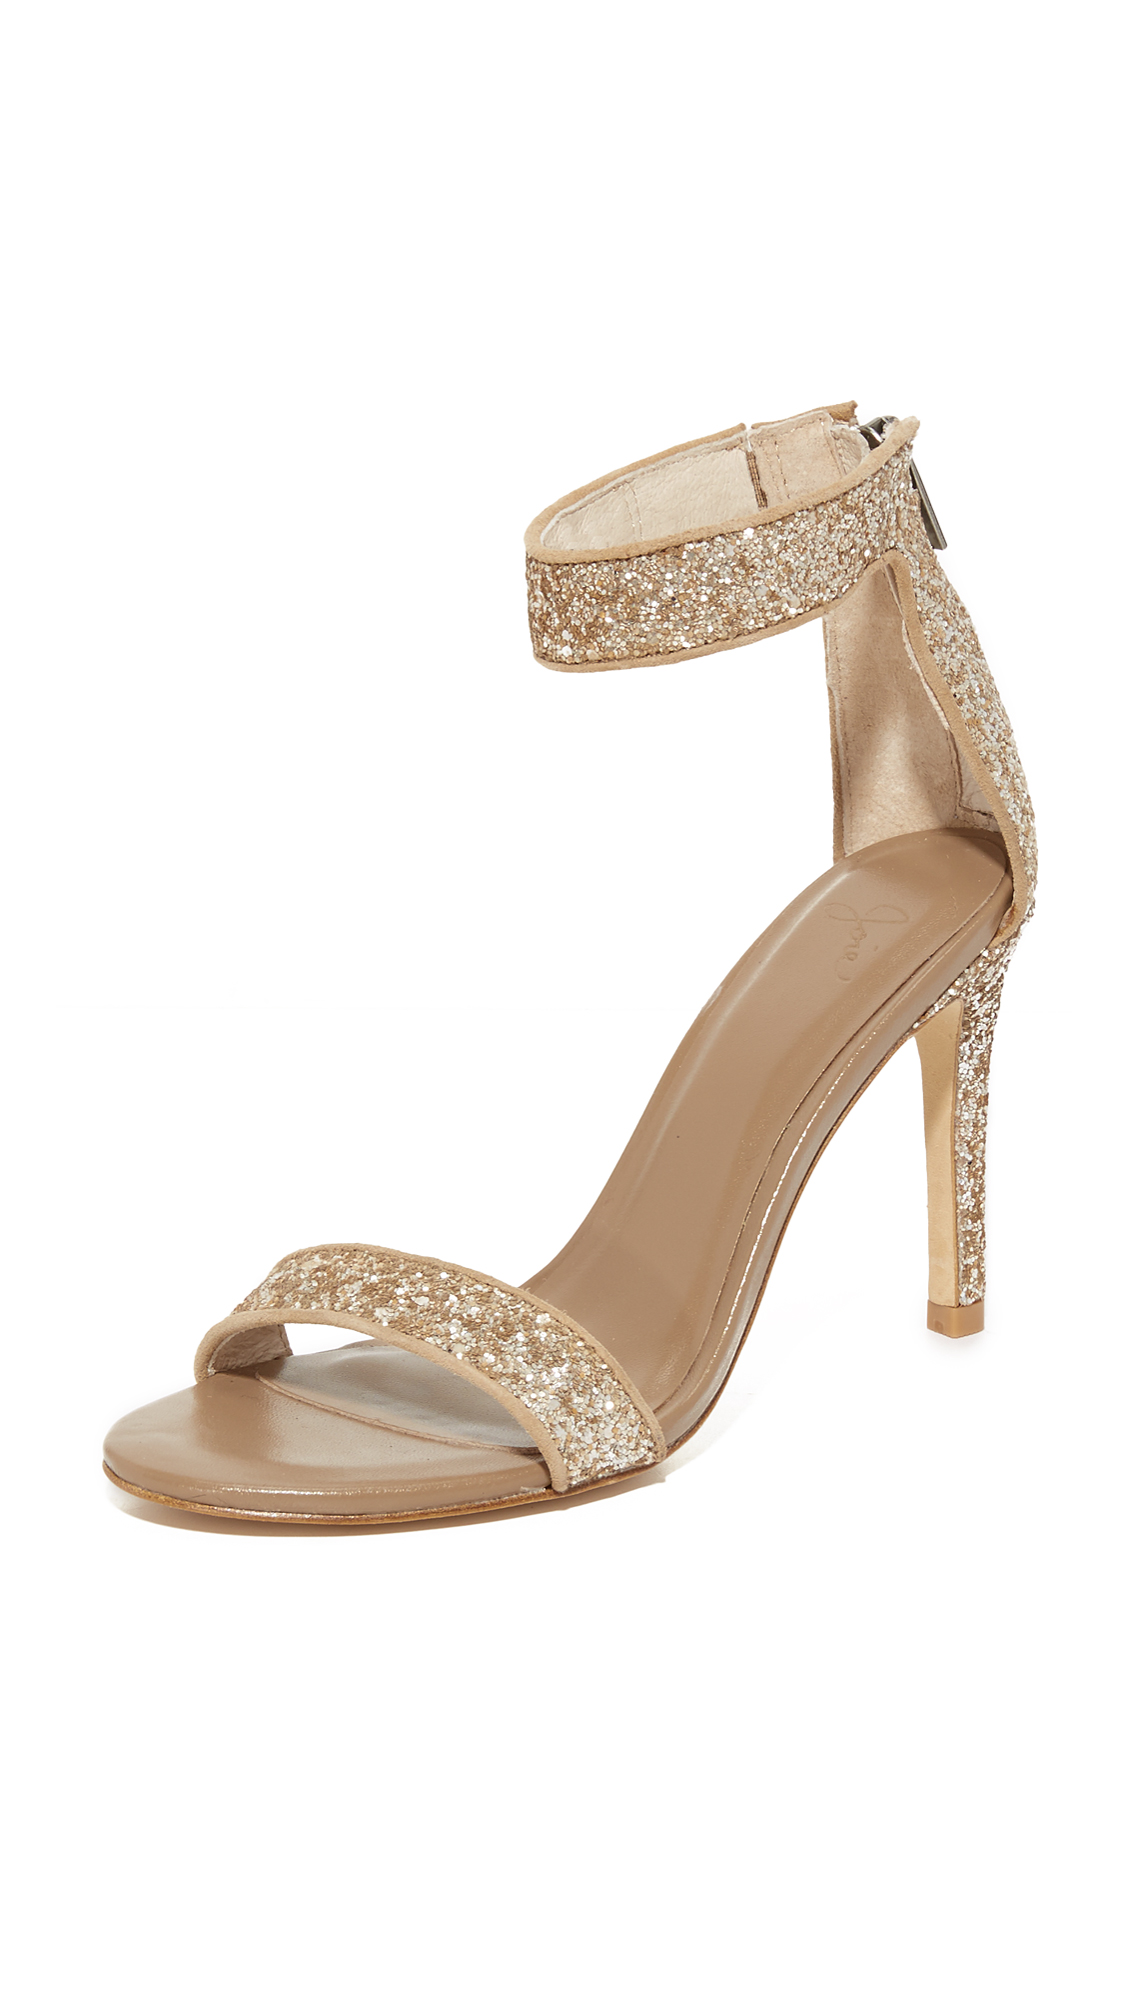 Joie Adriana Sandals - Gravel at Shopbop